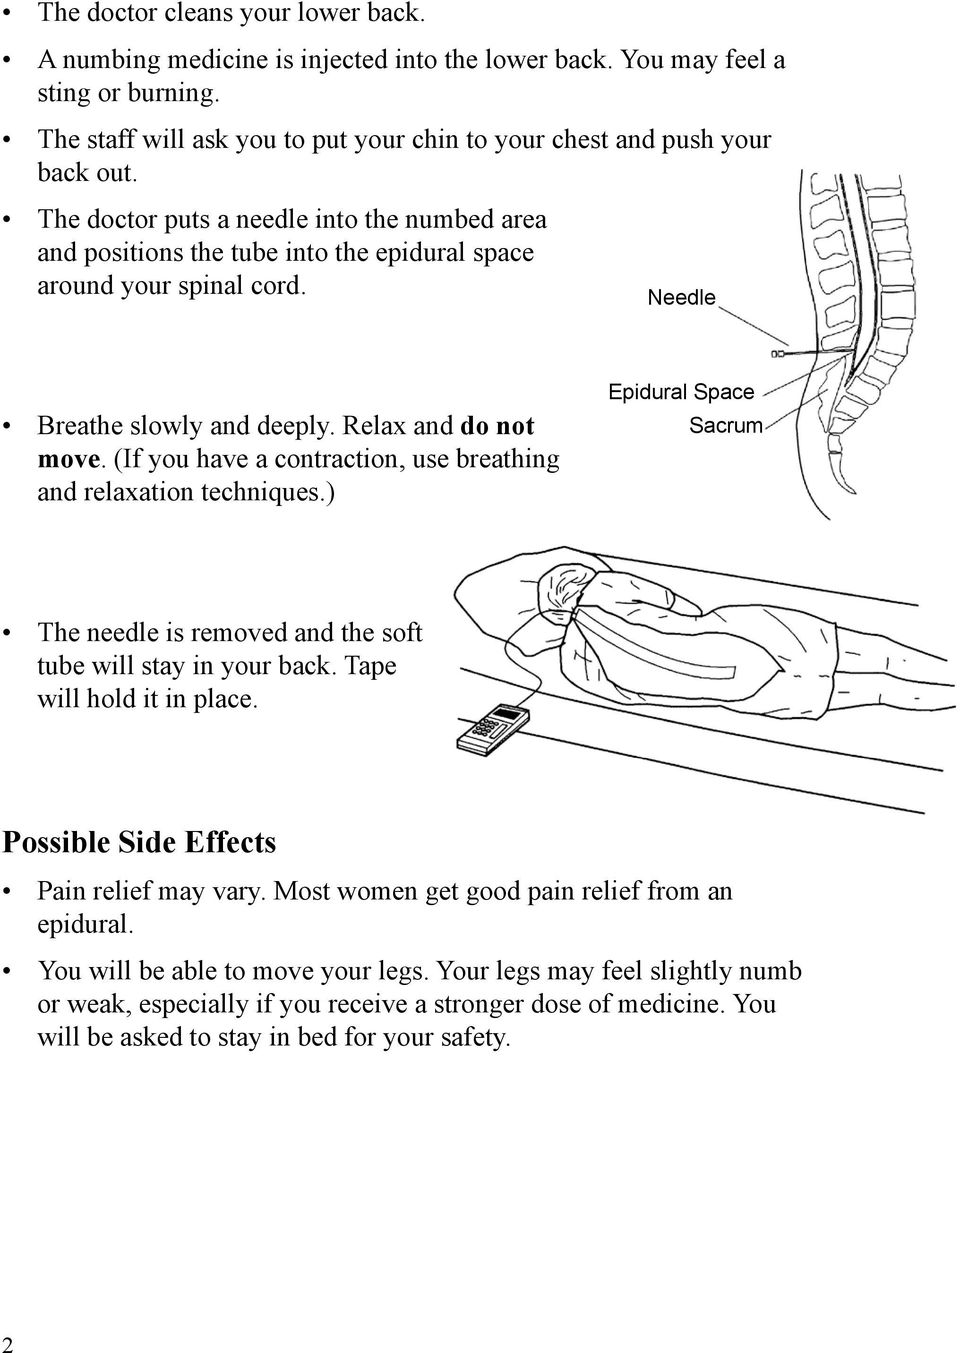 (If you have a contraction, use breathing and relaxation techniques.) Epidural Space Sacrum The needle is removed and the soft tube will stay in your back. Tape will hold it in place.